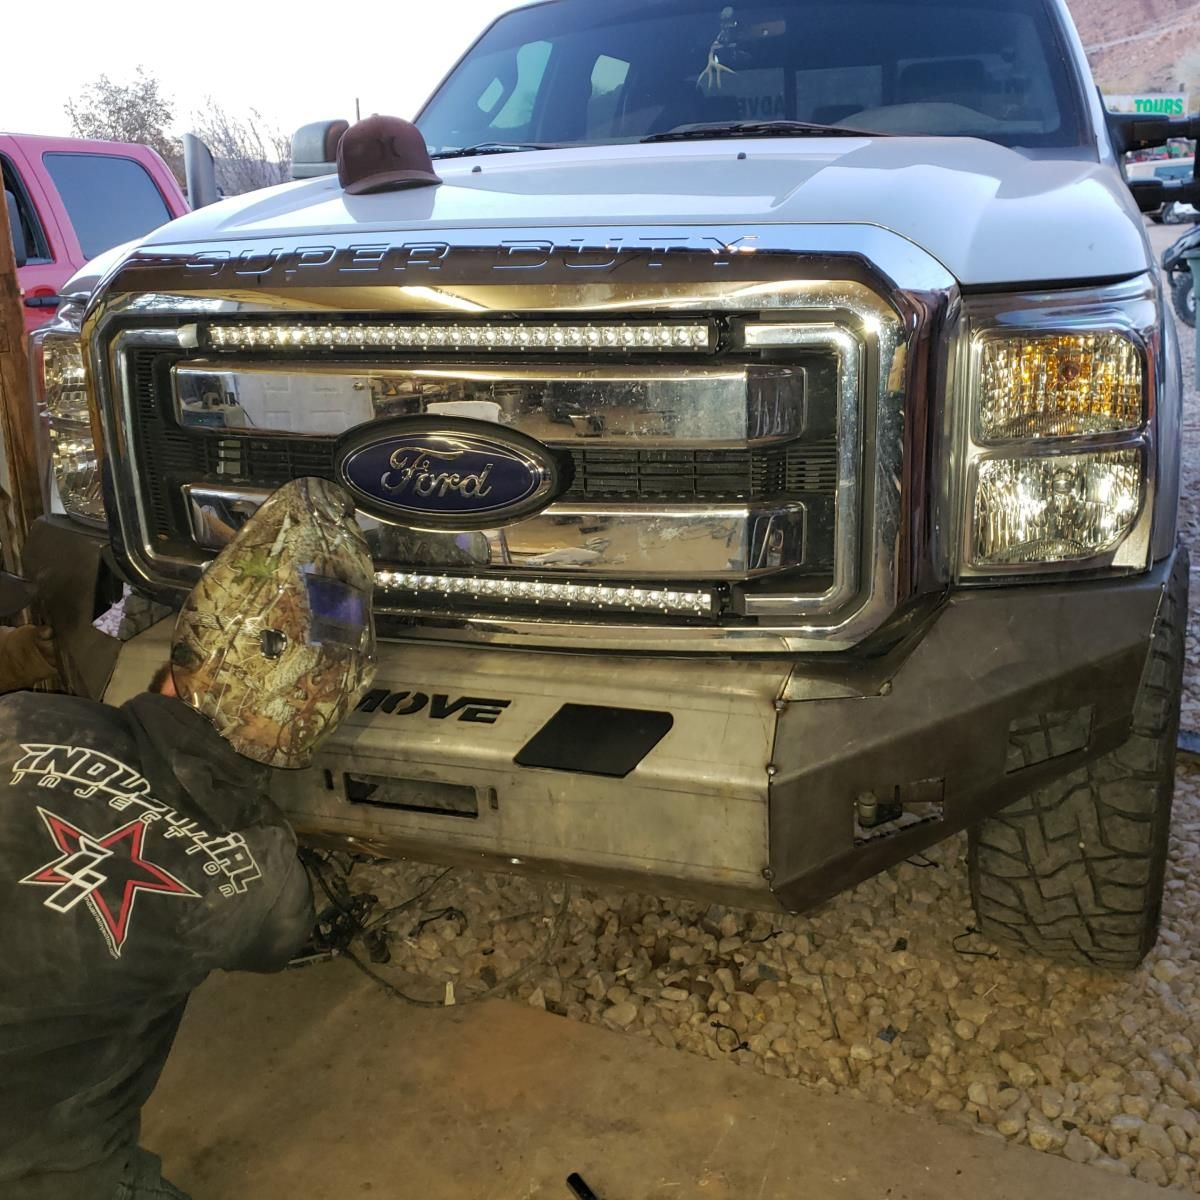 Customizable wiy front standard ford f250f350 20112016